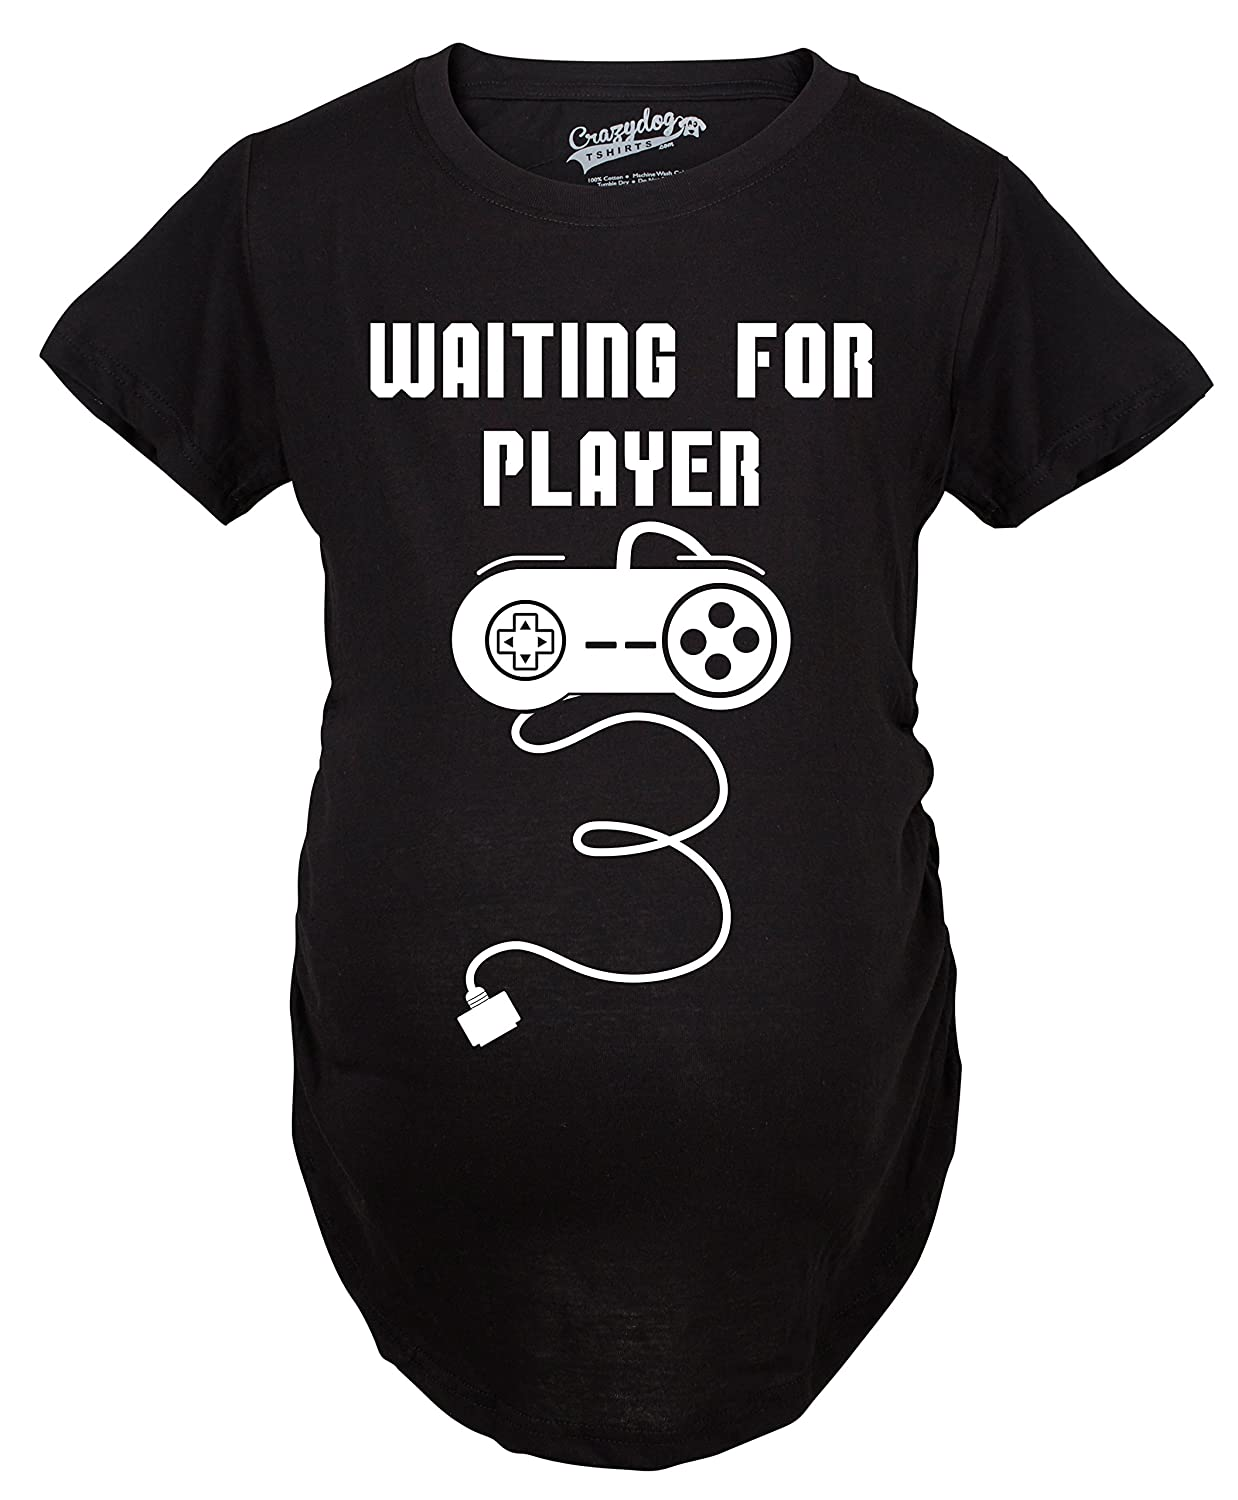 Maternity Waiting Player 3 Funny Im Pregnant Shirt Announce Pregnancy Gamer T Shirt Crazy Dog Tshirts 017WaitingPlayer3MAT